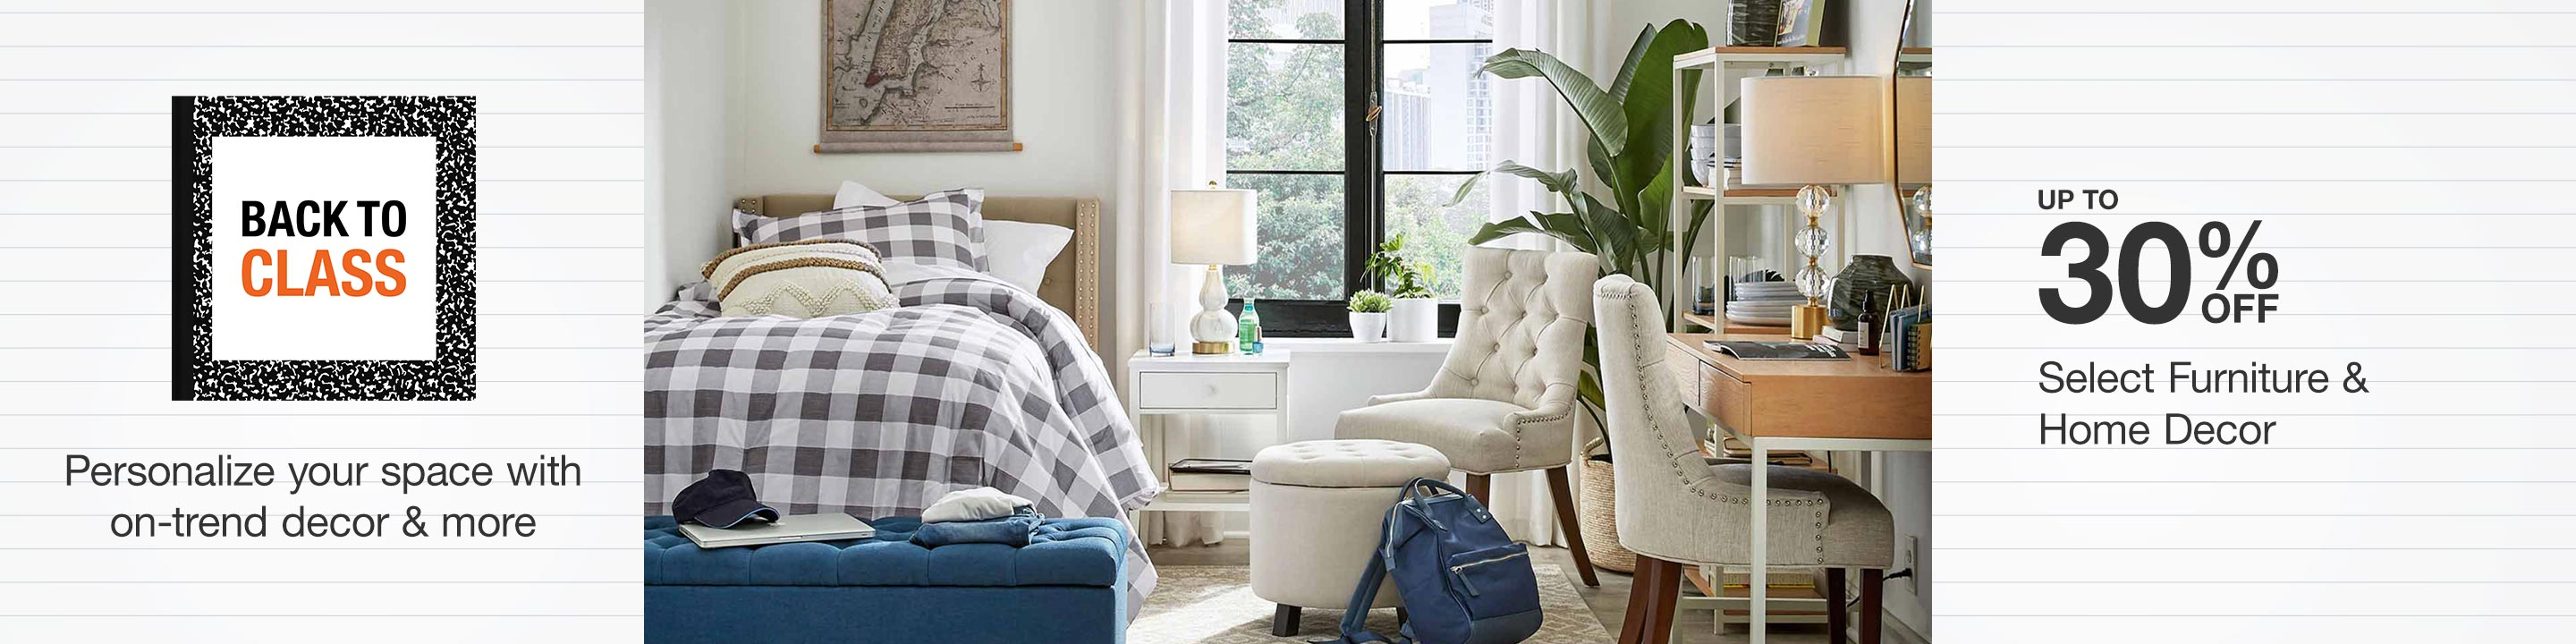 Back to Class - Up to 30% Off Select Furniture & Decor